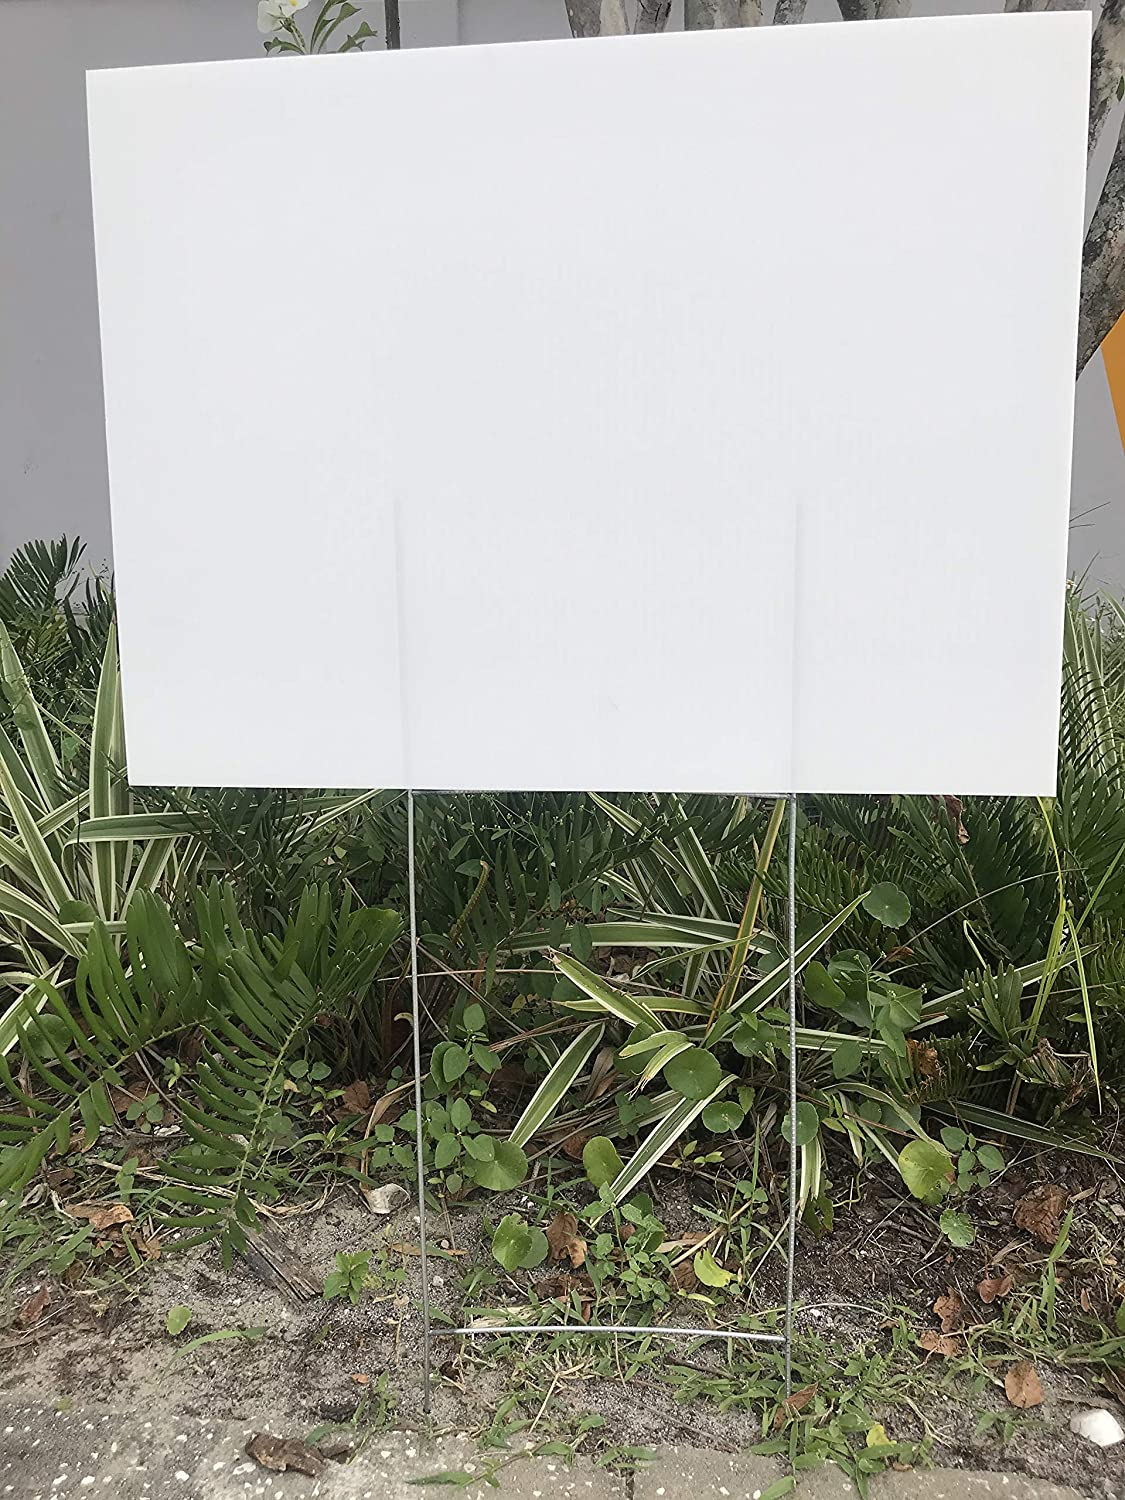 New sales Yard Sign Pack of 10 Blank 18''x24'' Max 54% OFF mm x White Corrugate 4